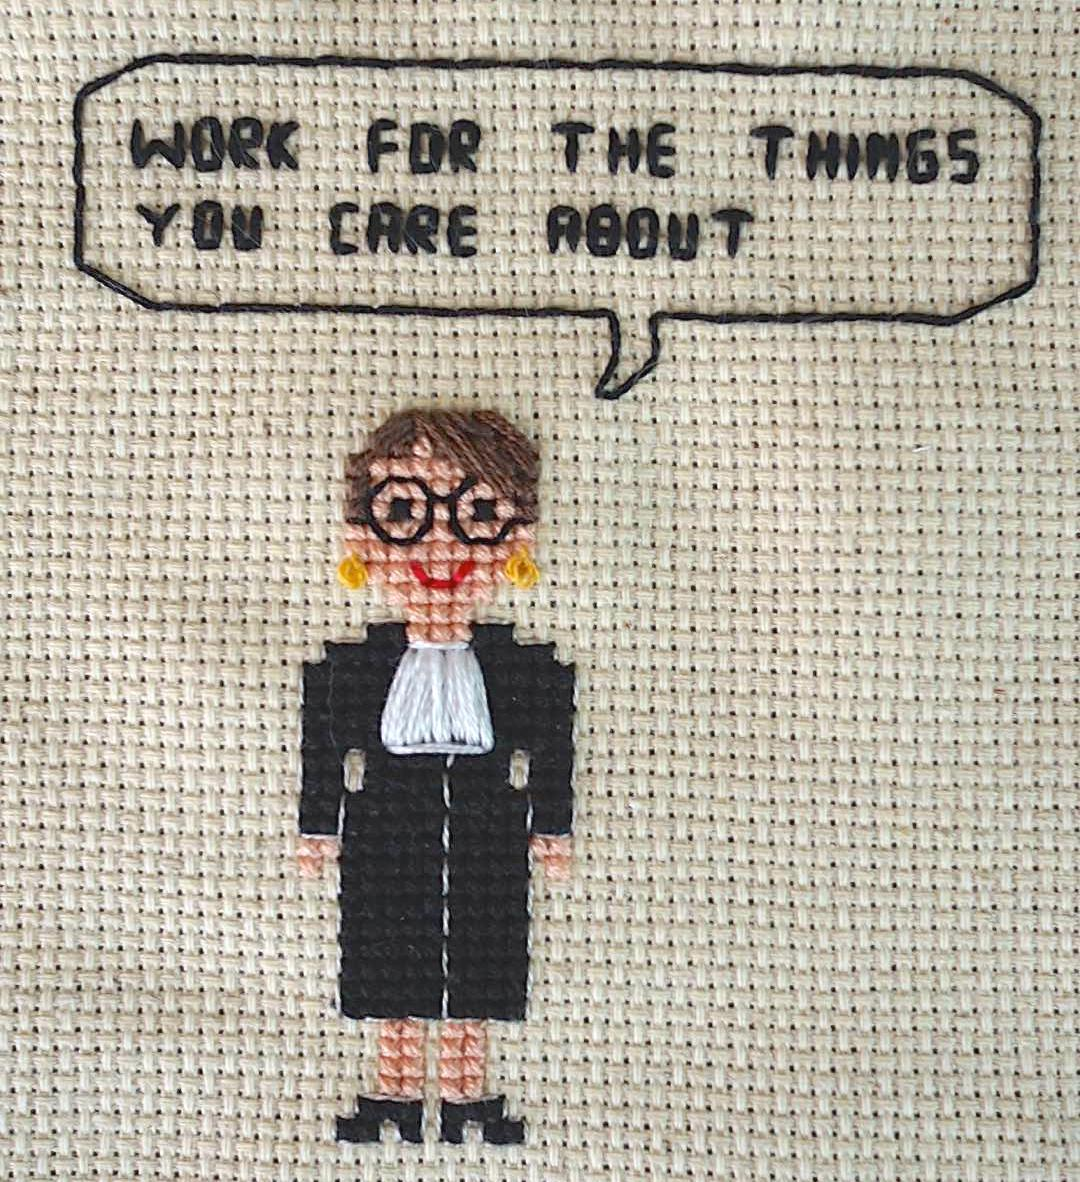 Happy #WomensEqualityDay ... you know what #RuthBaderGinsburg always says: http://t.co/WwPFYCJKug